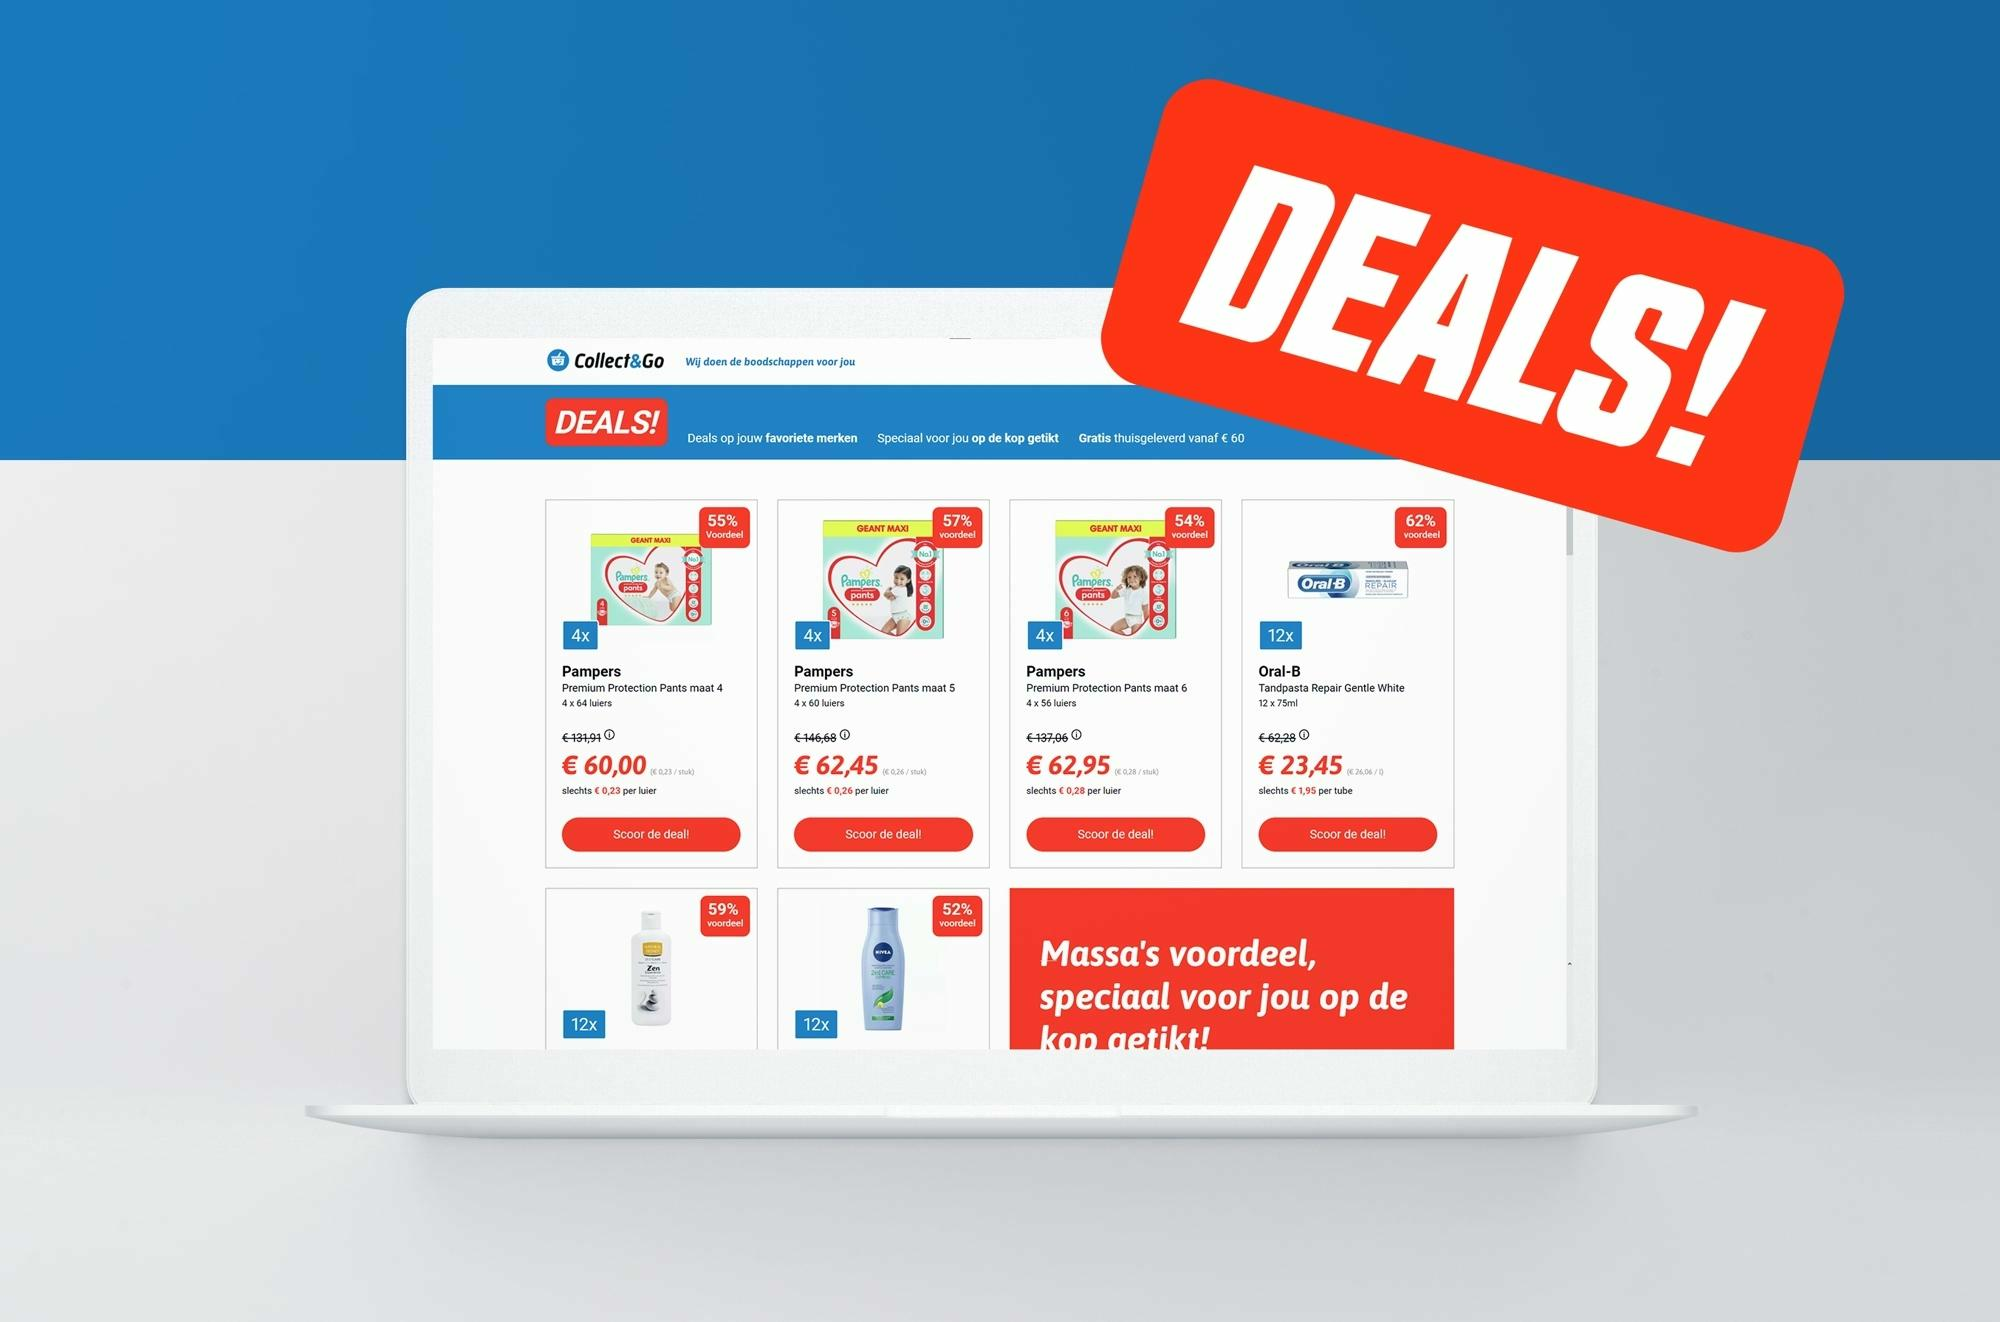 Deals! by Colruyt Group